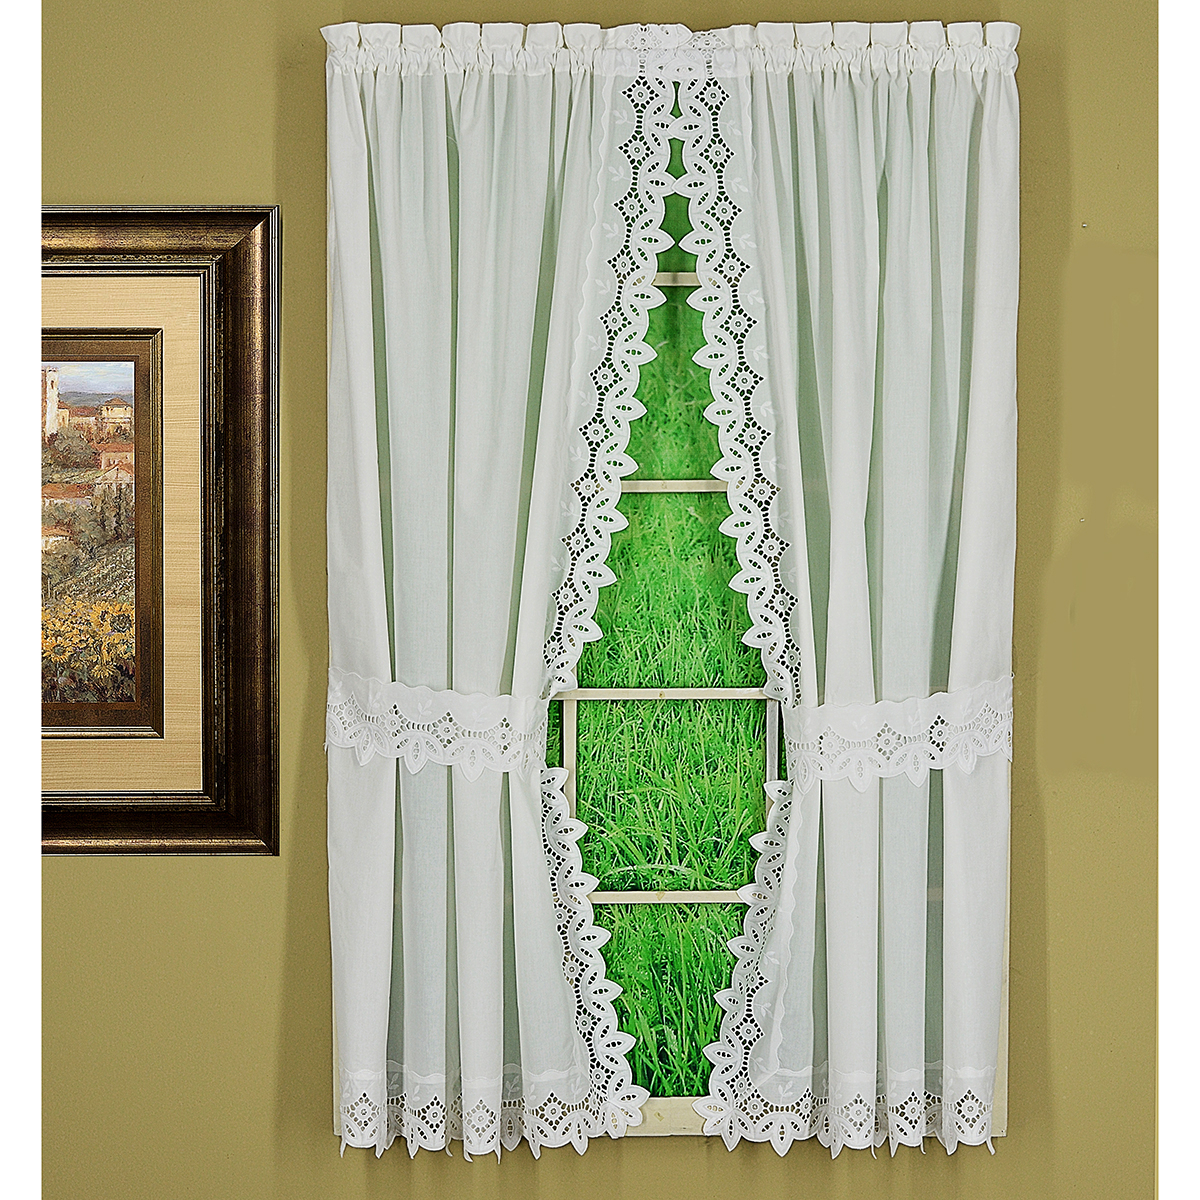 Curtain Panel Pairs With Preferred Heirloom Embroidered Curtain Panel Pairs (View 8 of 20)